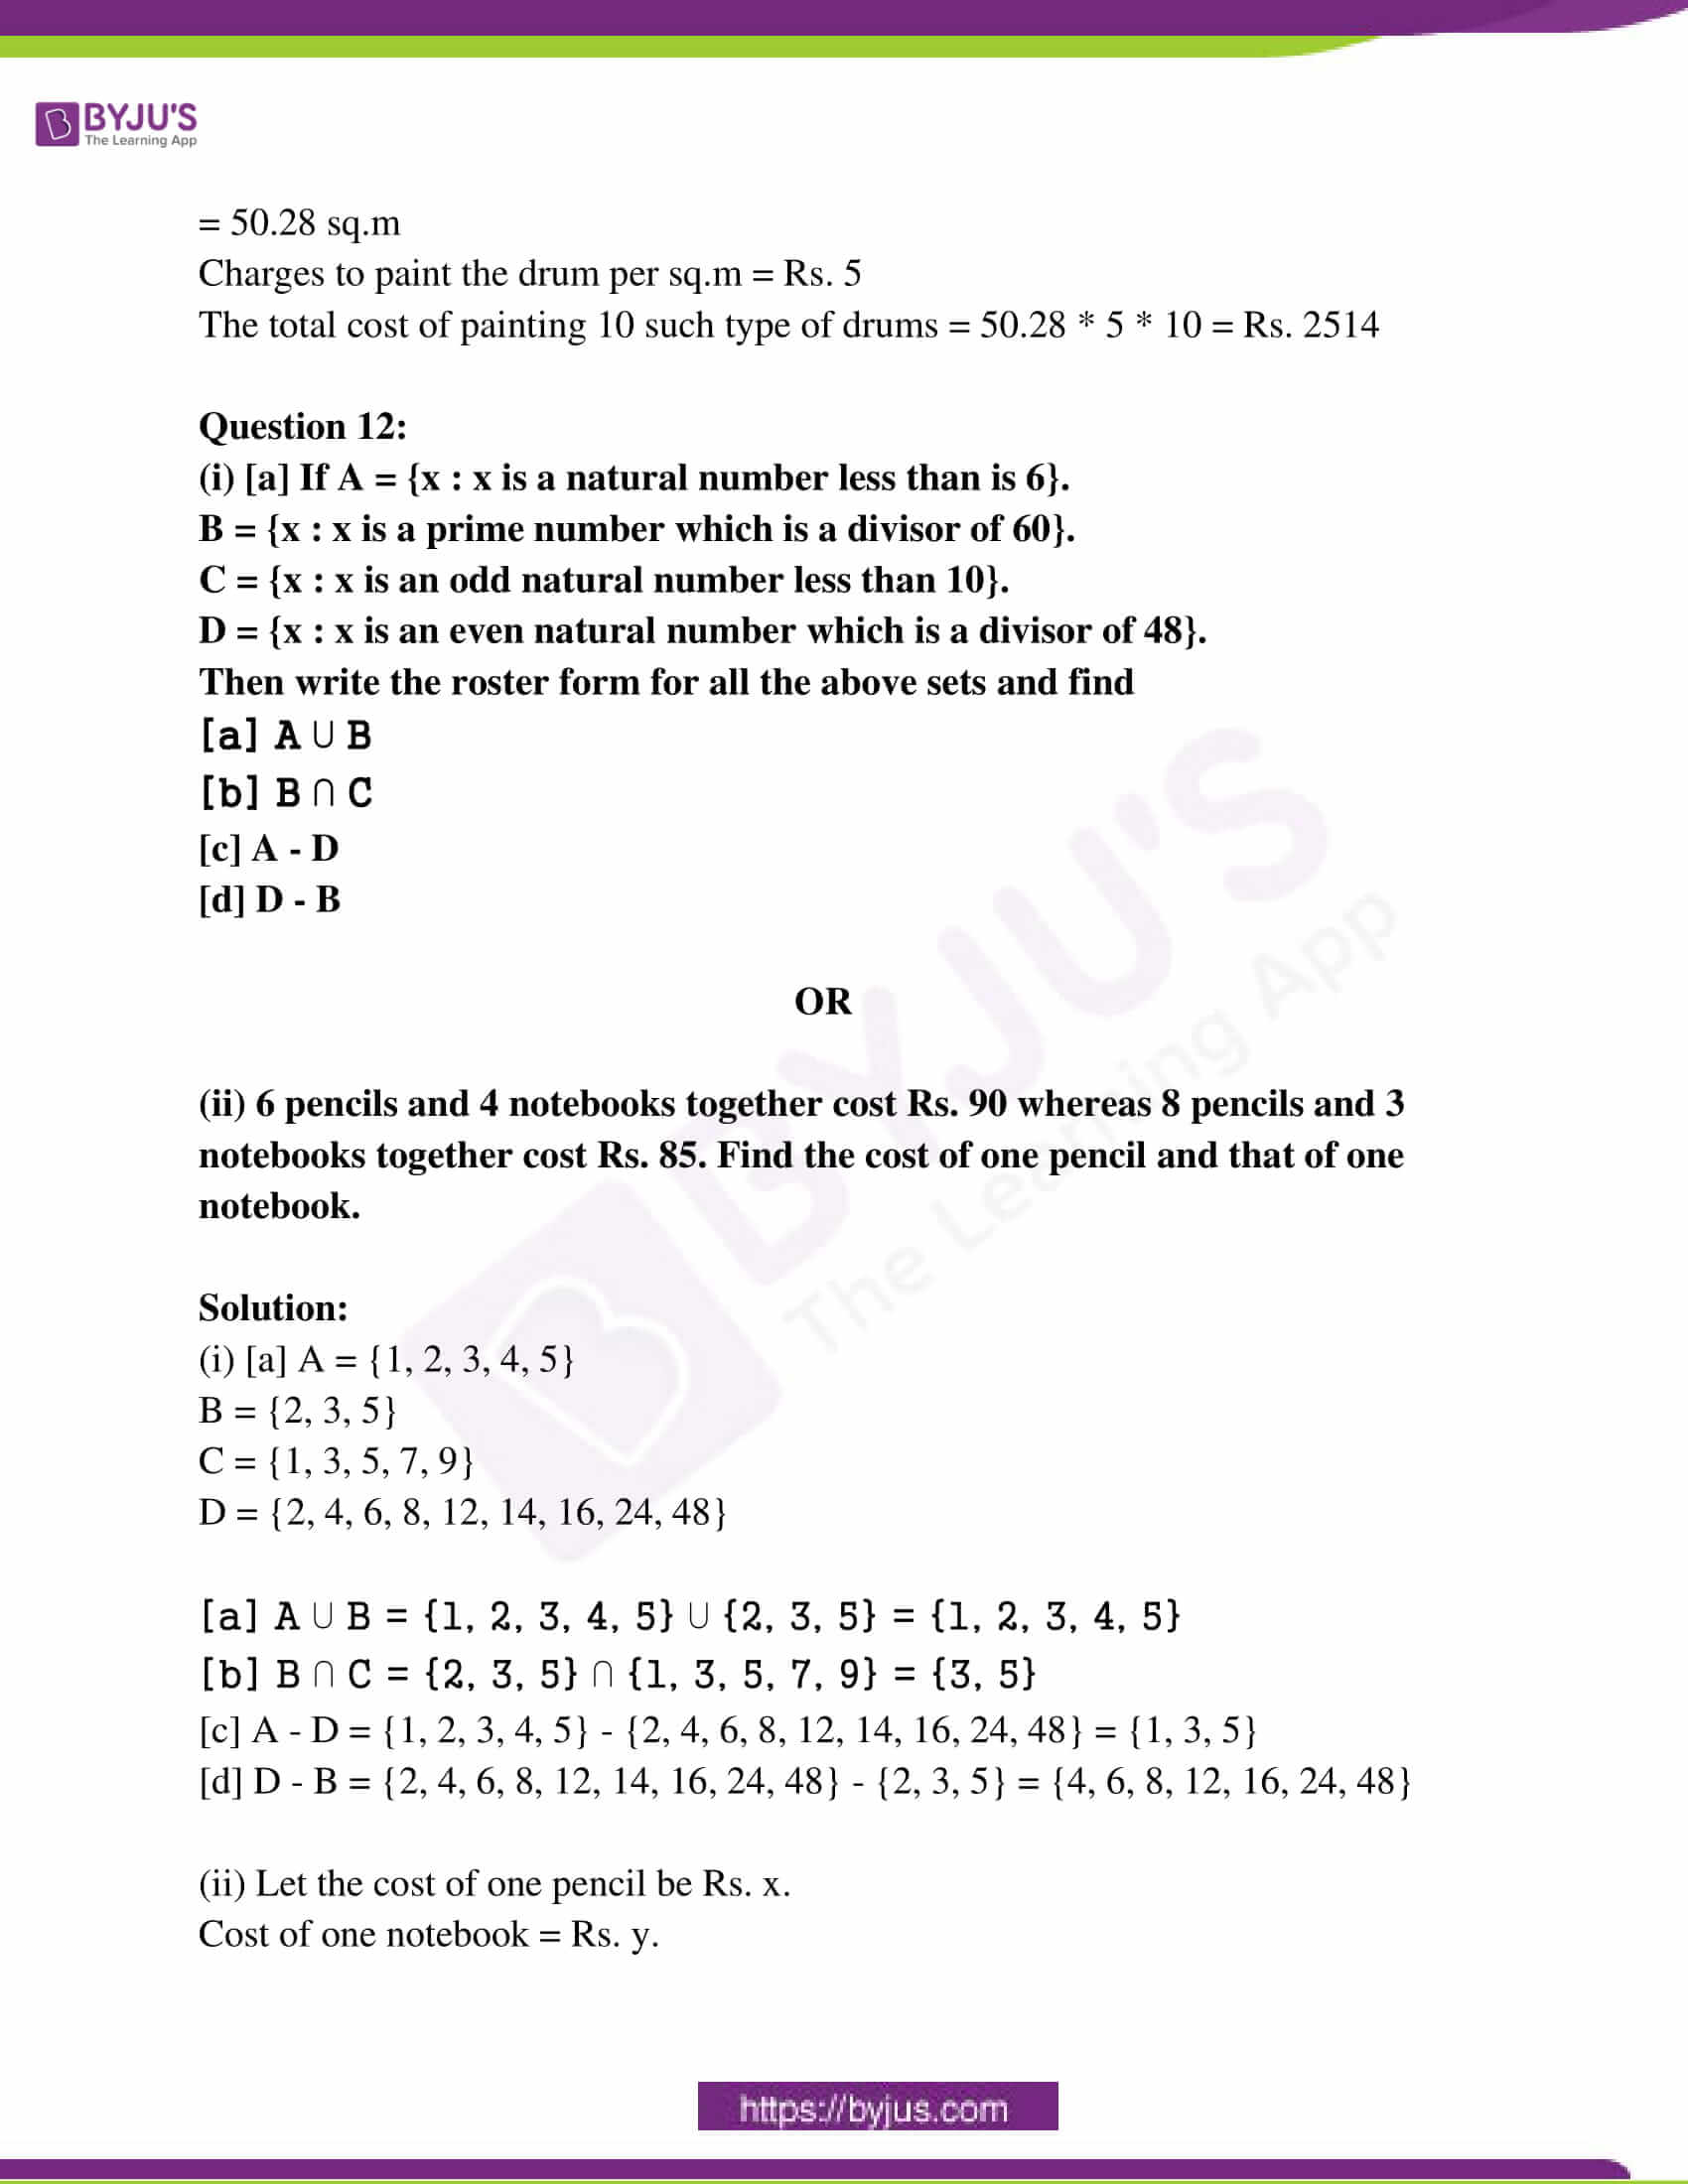 ap class 10 maths question paper 1 sol march 2019 07